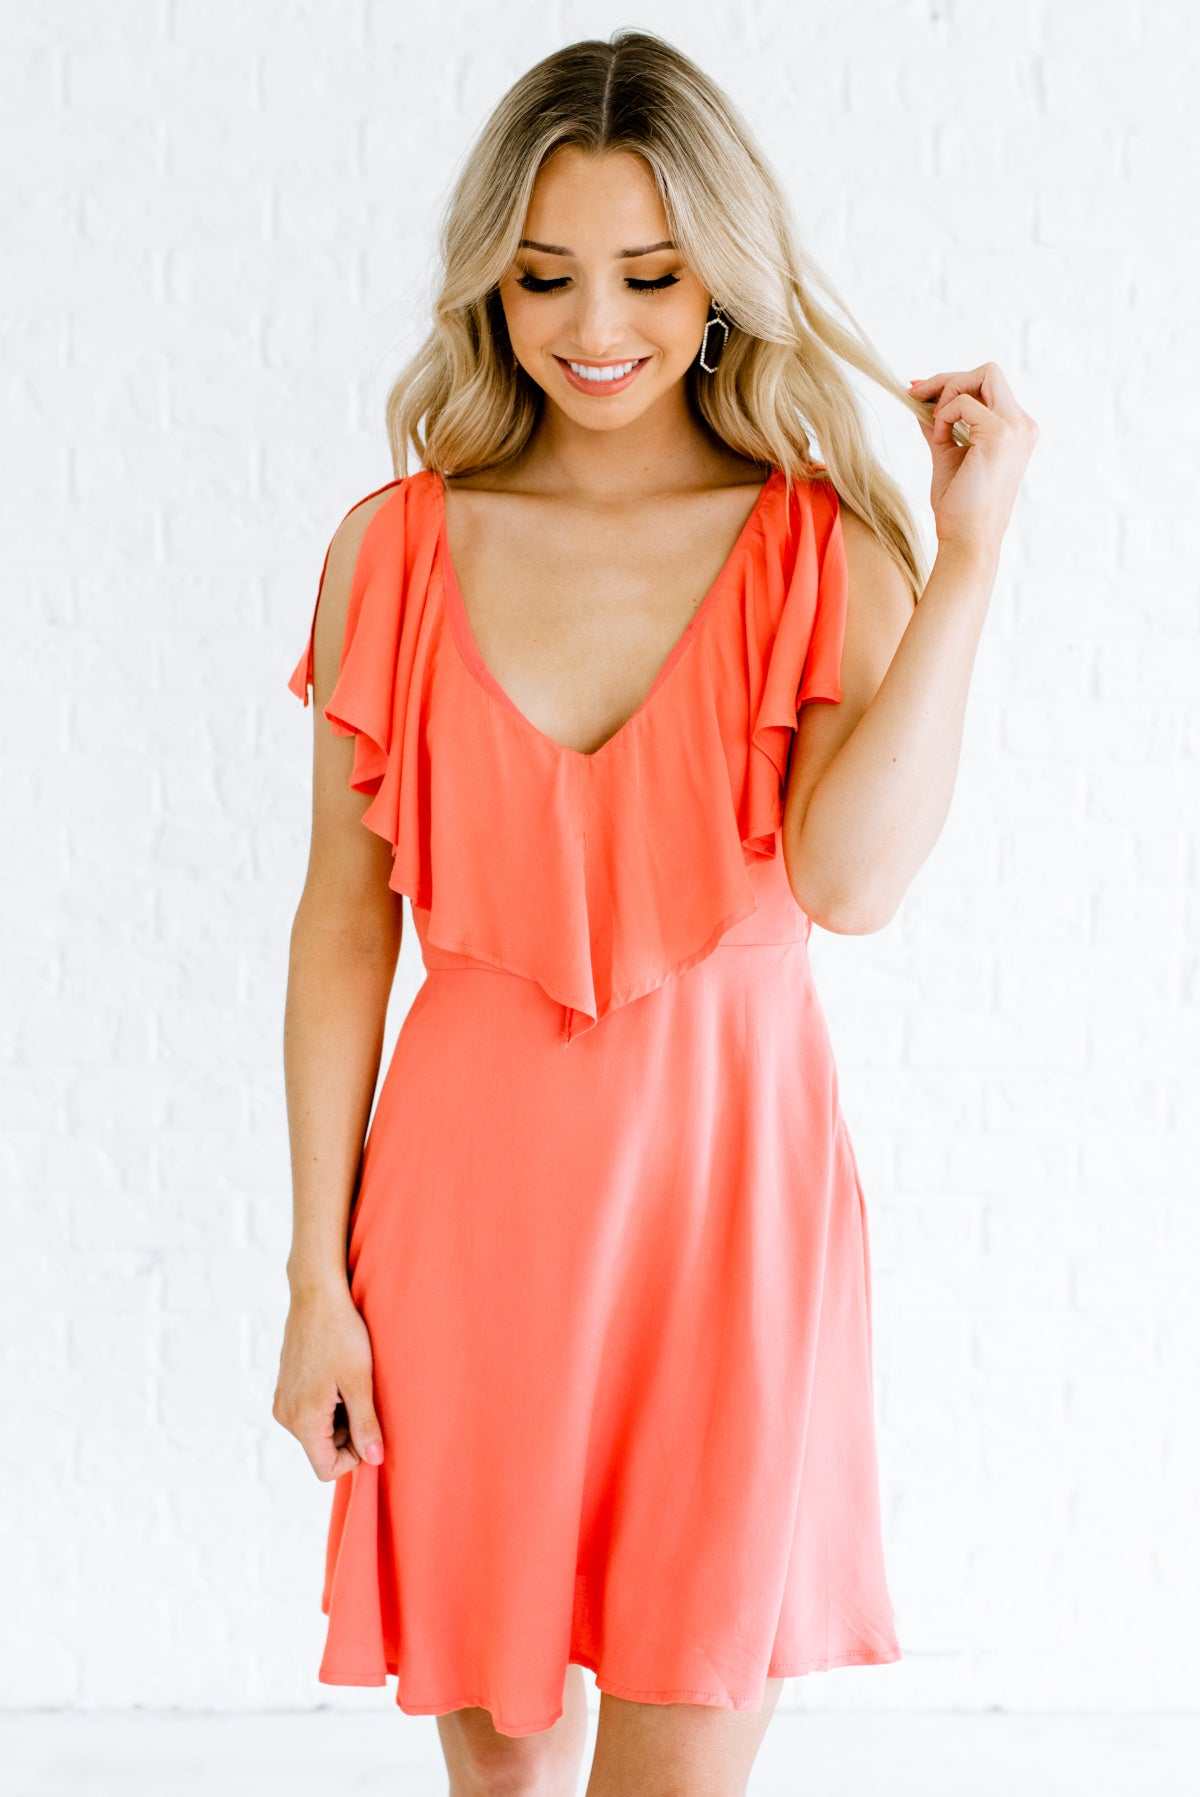 Coral Pink Fully Lined Boutique Mini Length Dresses for Women